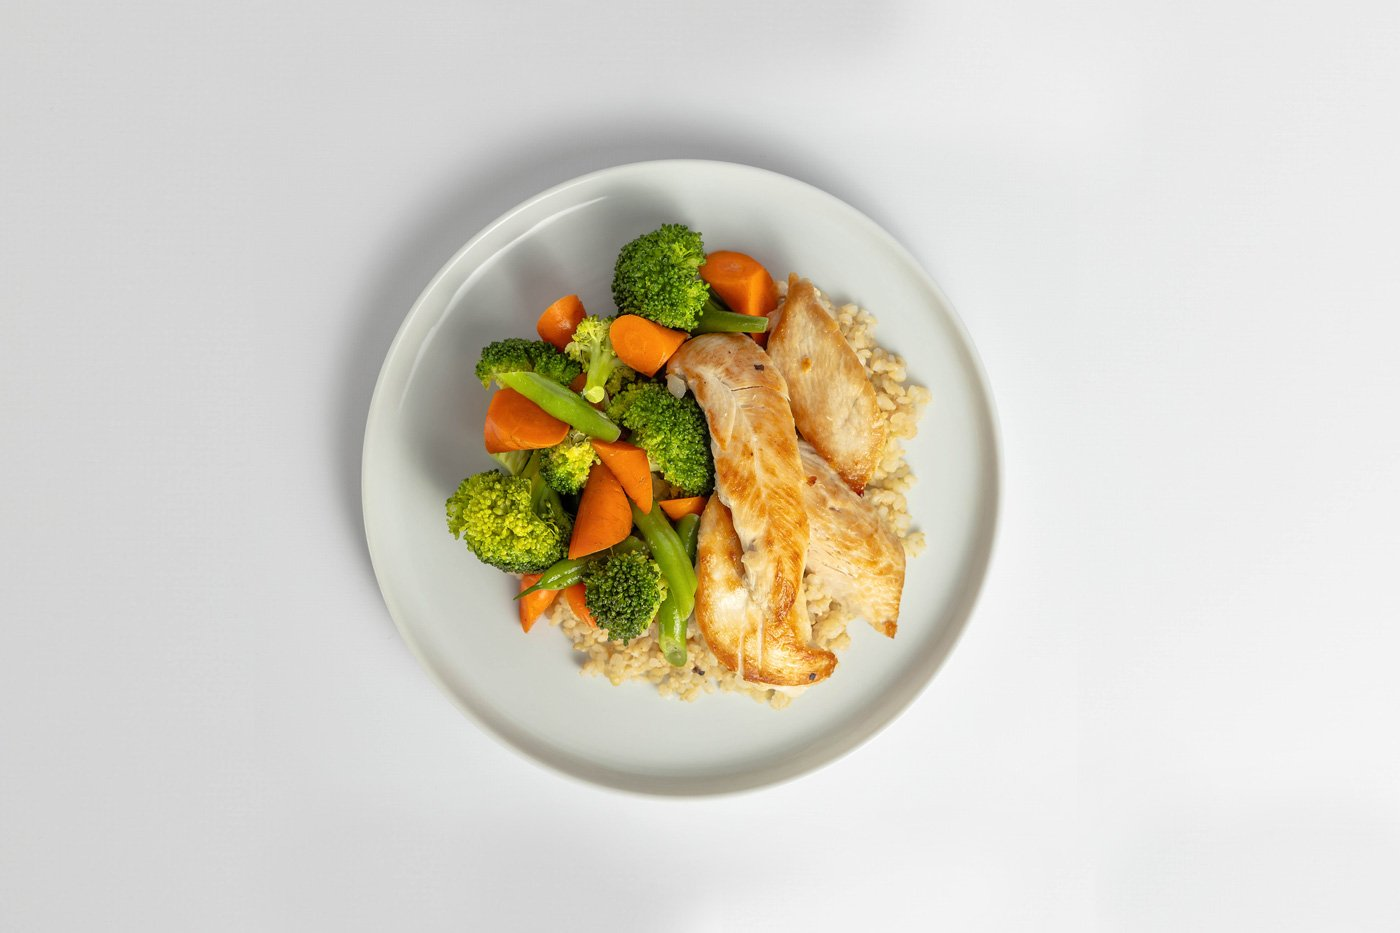 Chicken Tenders, Brown Rice, Mixed Vegetables Meal Product Image